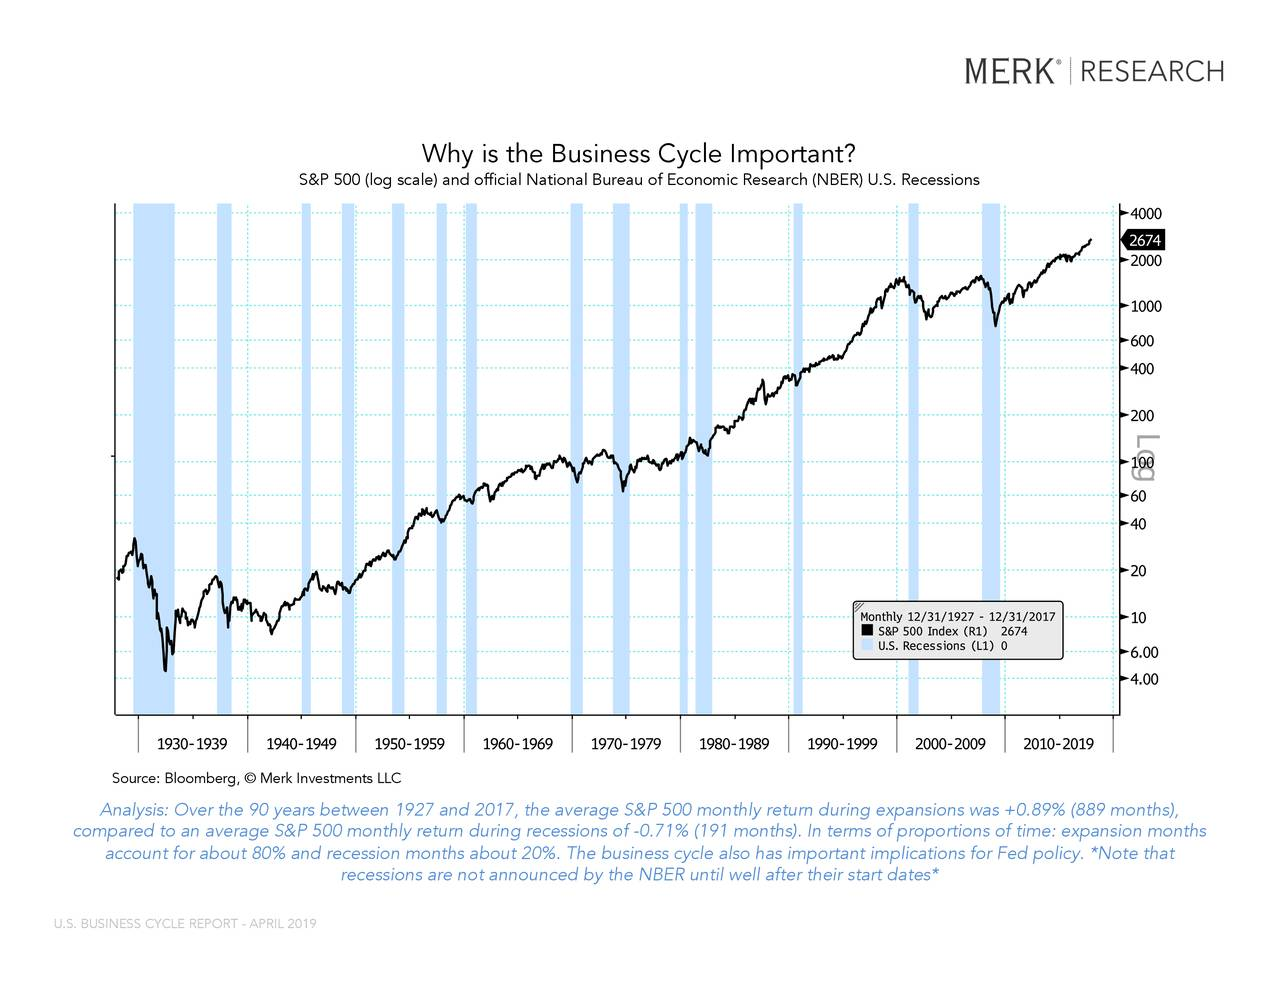 """SPX Index (S&P 500 Index) SRINDEX Index (U.S. Recession Indicator... Why is the Business Cycle Important? S&P 500 (log scale) and official National Bureau of Economic Research (NBER) U.S. Recessions This rSource: Bloomberg,© Merk Investments LLCany way. The BLOOMBERG PROFESSIONAL service and BLOOMBERG Data are owned and distributed locally by Bloomberg Finance LP (""""BFLP"""") and its subsidiaries in all jurisdictions other than Argentina, Bermuda, China, India, Japan and Korea (the (""""BFLP Countries""""). BFLP is a wholly-owned subsidiary of Bloomberg LP (""""BLP""""). BLP provides BFLP with all the global marketing and operational support and service for the Services and distributes the Services either directly or through a non-BFLP subsidiary in the BLP Countries. BFLP, BLP and their affiliates do not provide investment advice, and nothing herein shall constitute an offer of financial instruments by BFLP, BLP or their affiliates. Analysis: Over the 90 years between 1927 and 2017, the average S&P 500 monthly return during expansions was +0.89% (889 months), coBloomberg ® 02/01/2019 18:54:18turn during recessions of -0.71% (191 months). In terms of proportions of time: expansi on months 1 account for about 80% and recession months about 20%. The business cycle also has important implications for Fed policy. *Not e that recessions are not announced by the NBER until well after their start dates* U.S. BUSINESS CYCLE REPORT - APRIL 2019"""